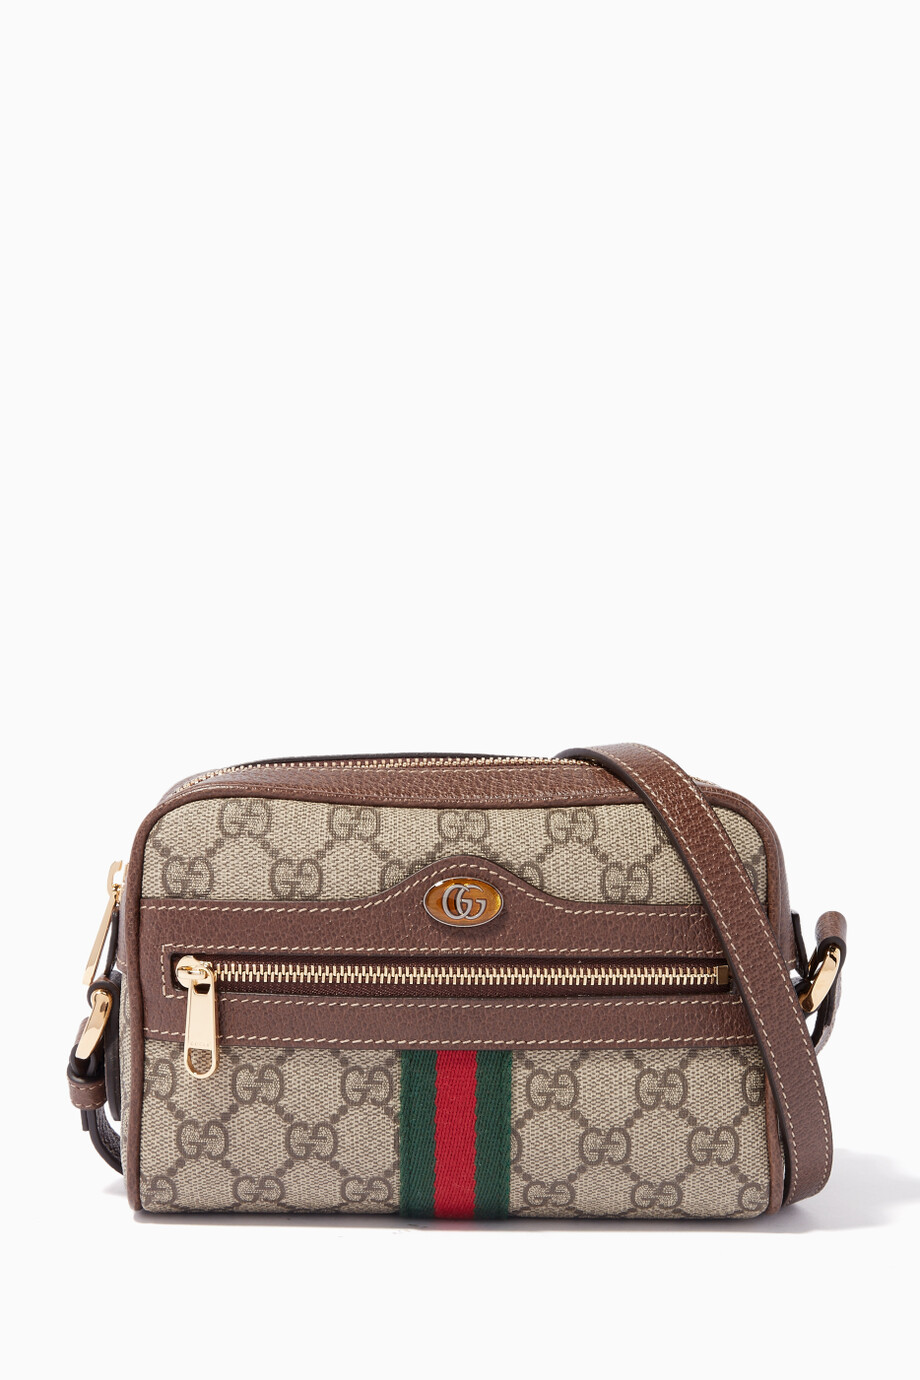 2c86fded5690d0 Shop Gucci Neutral Beige Mini Ophidia GG Printed Camera Bag for ...